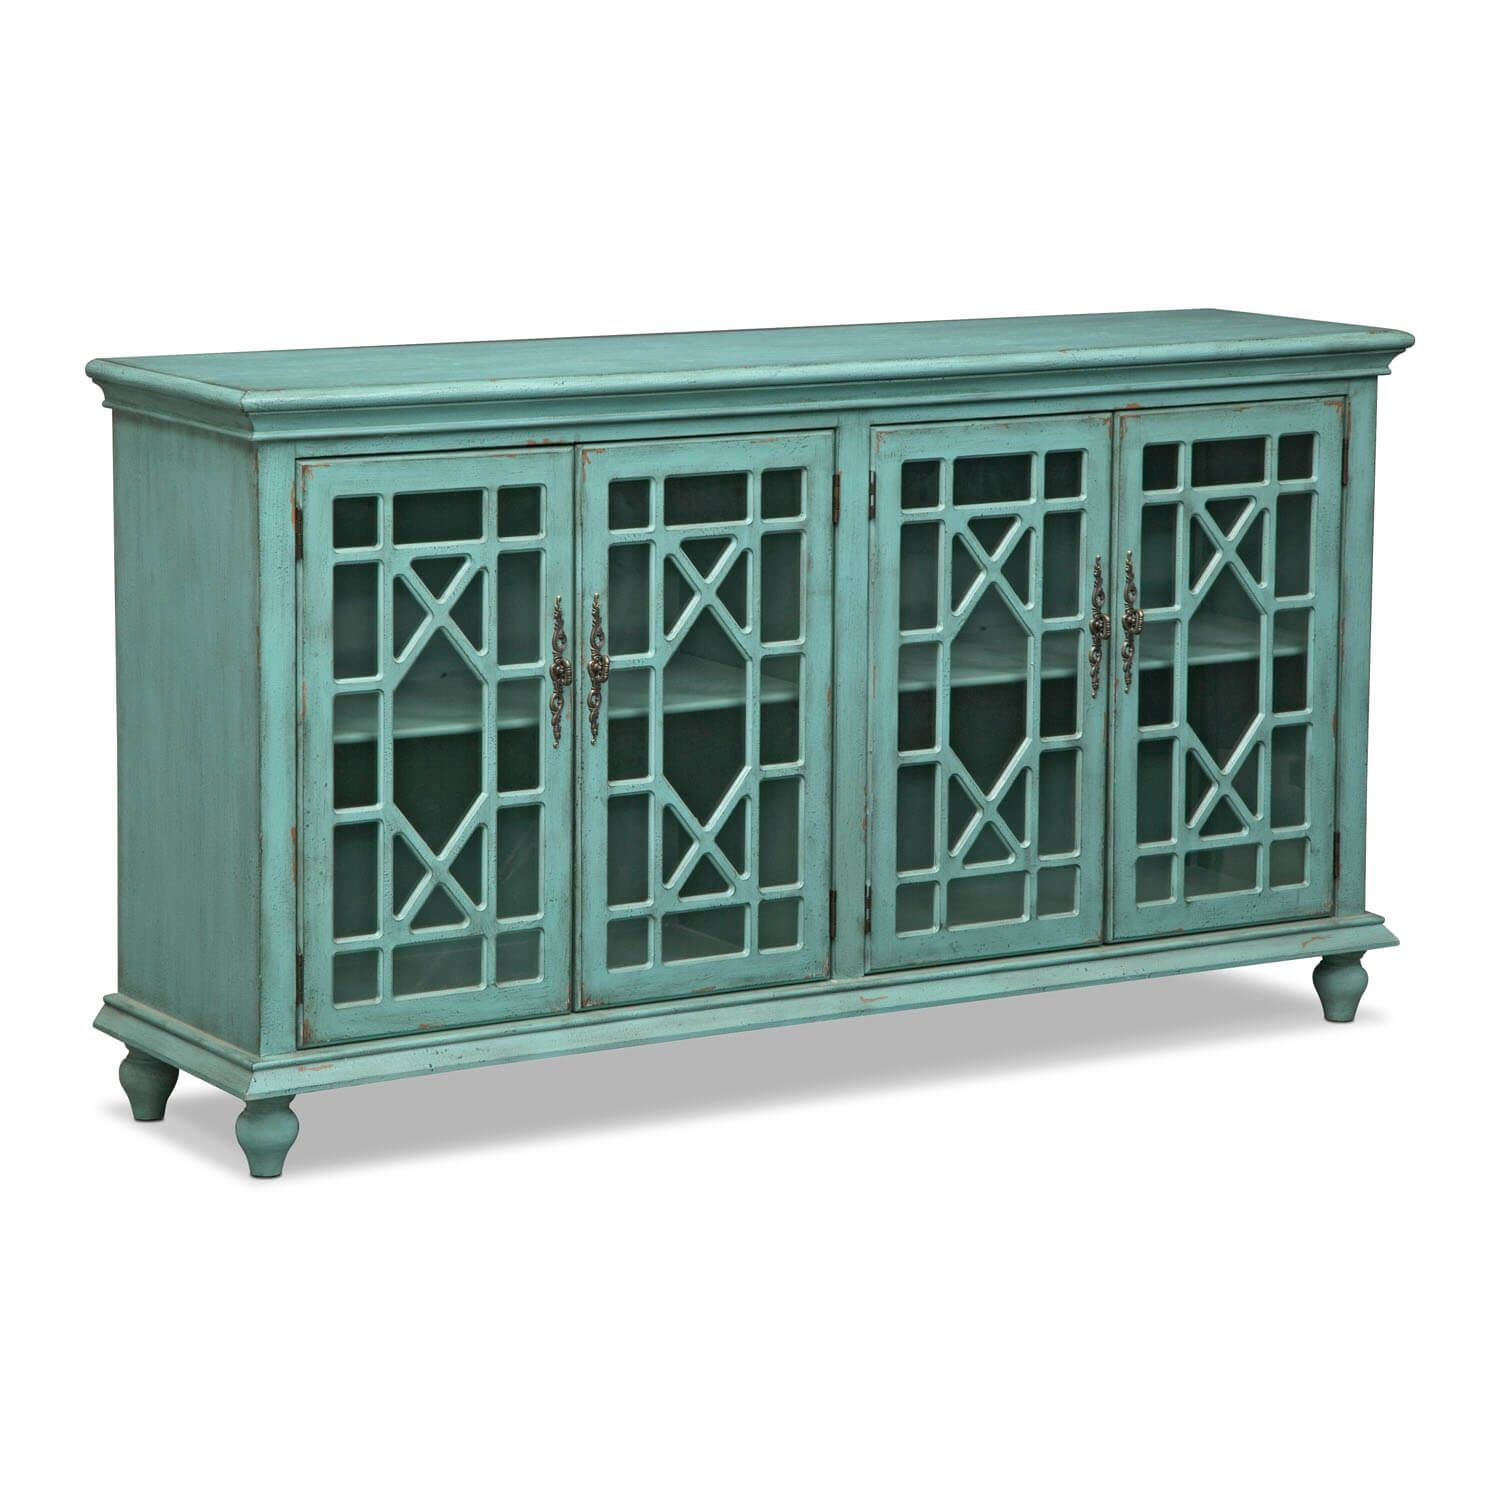 Grenoble Media Credenza - Teal | Credenza, City furniture and Recliner